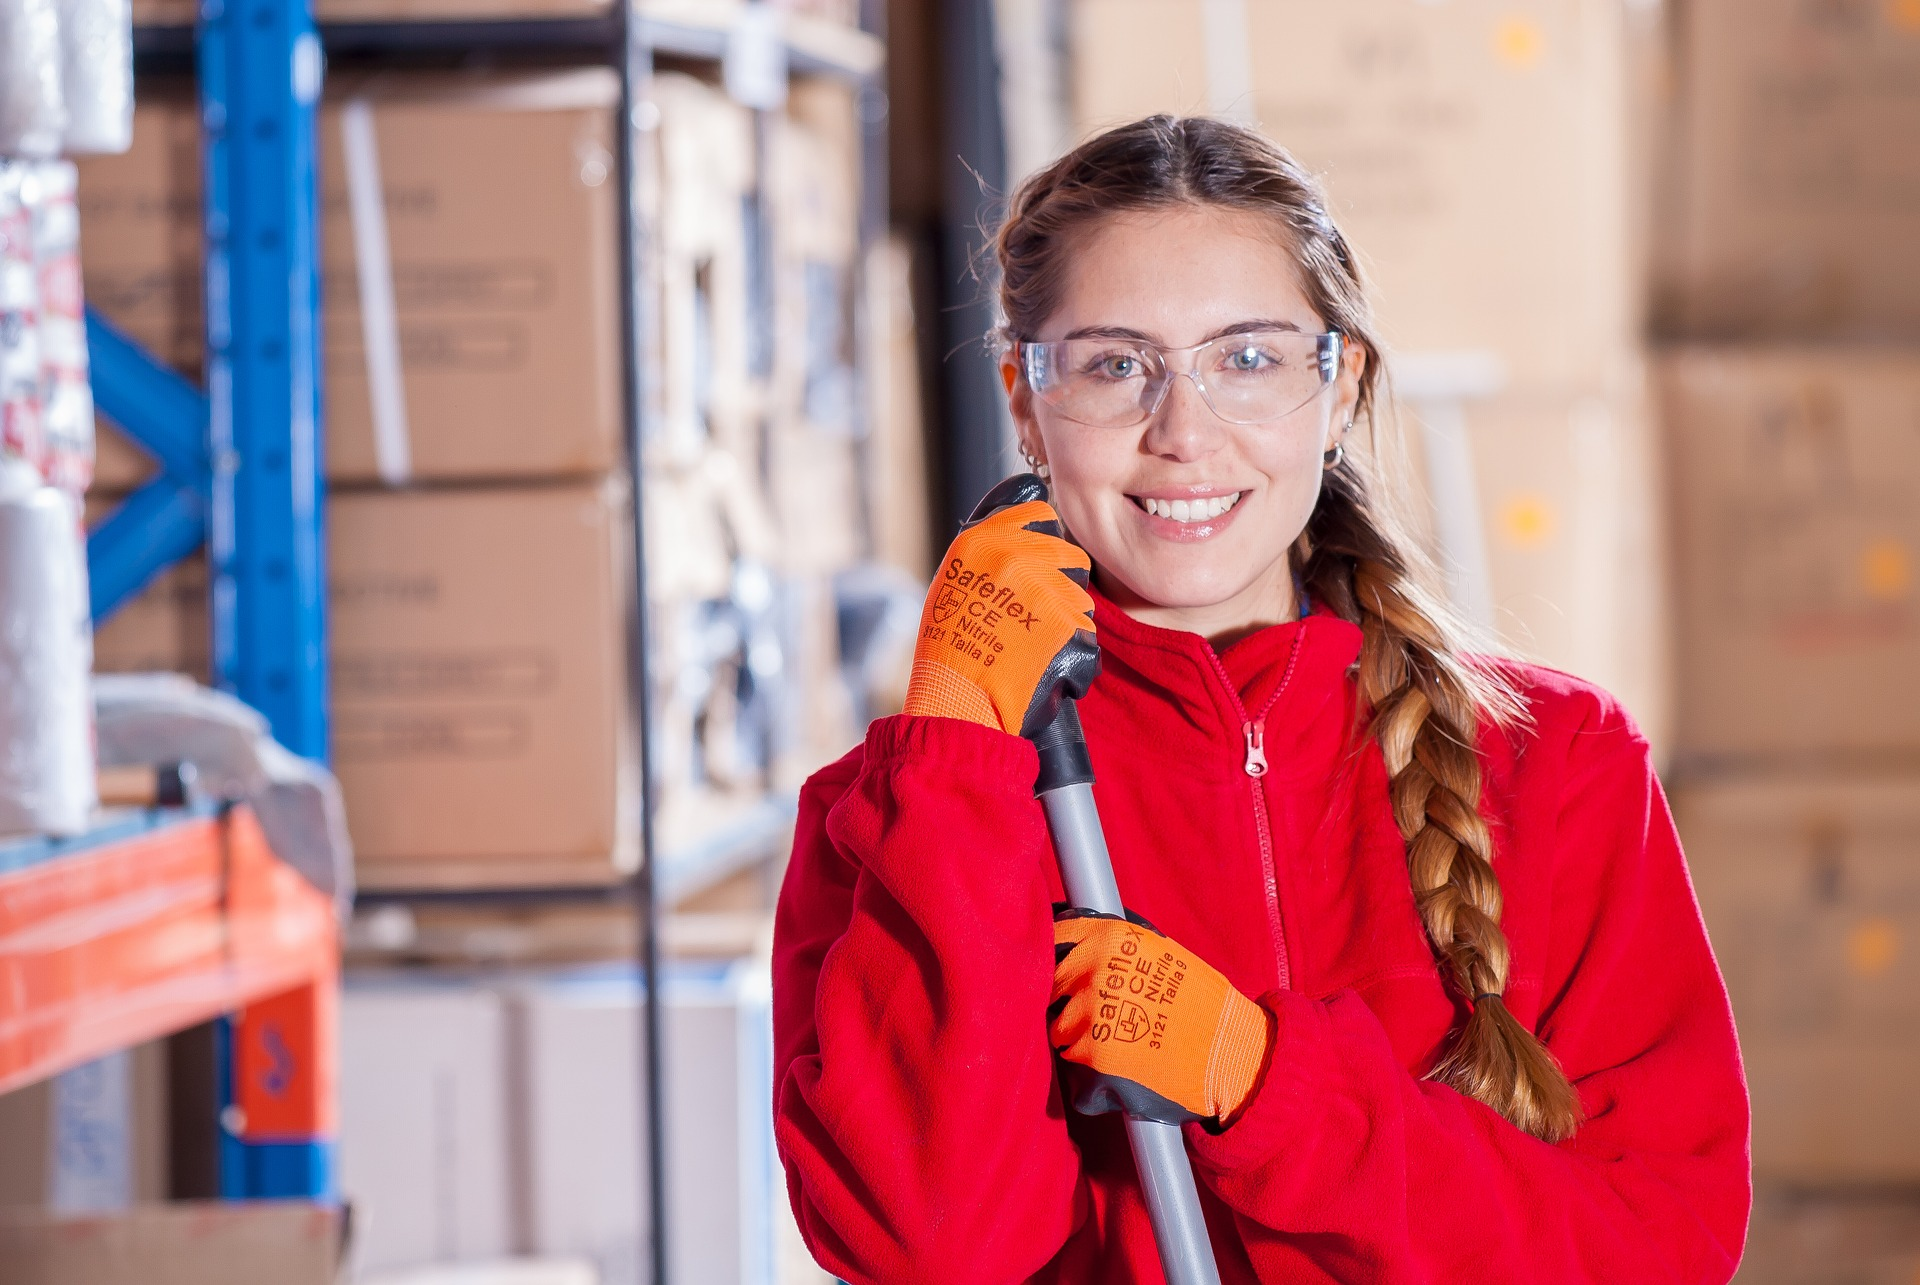 Woman wearing red while holding a cleaning material